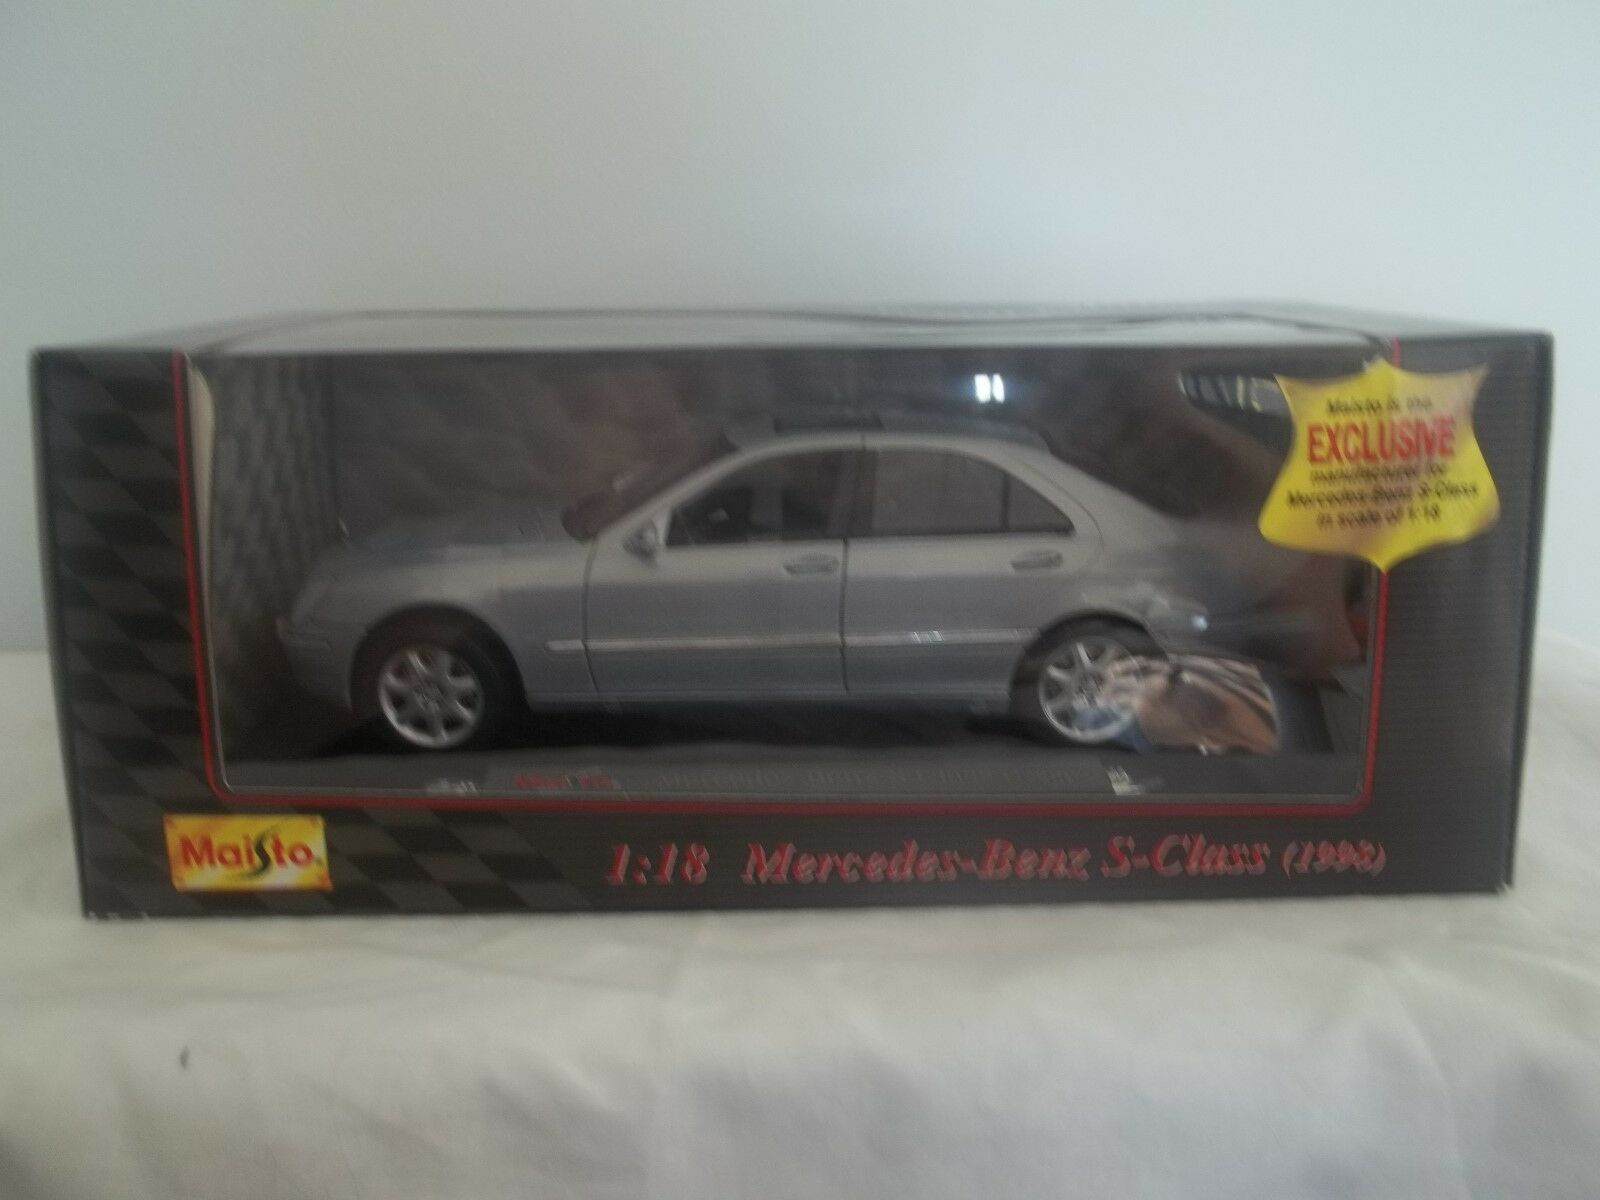 Maisto Special Edition 31855 MERCEDES BENZ CLASSE S 1998 argent 1 18 Comme neuf & Boxed